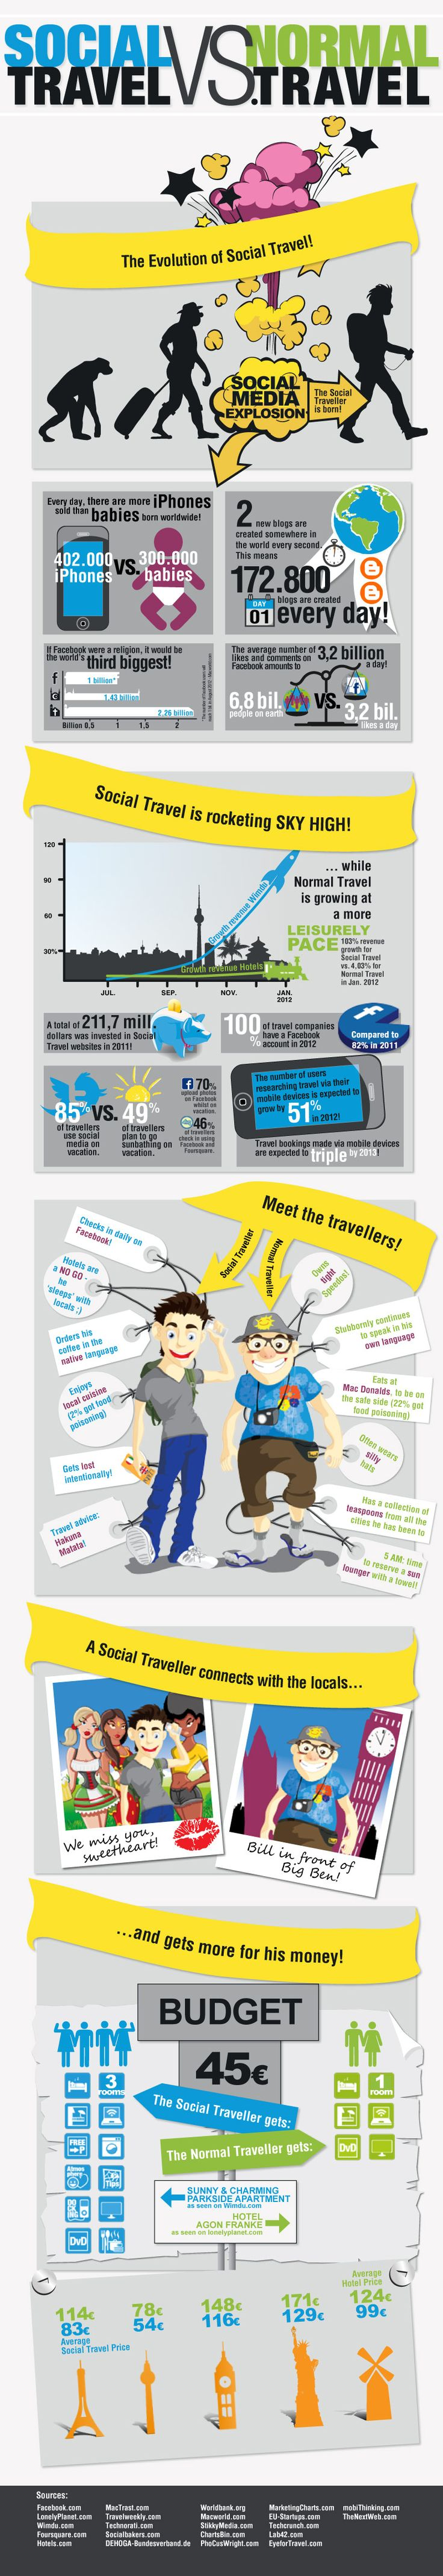 Infografía: Social travel Vs normal travel